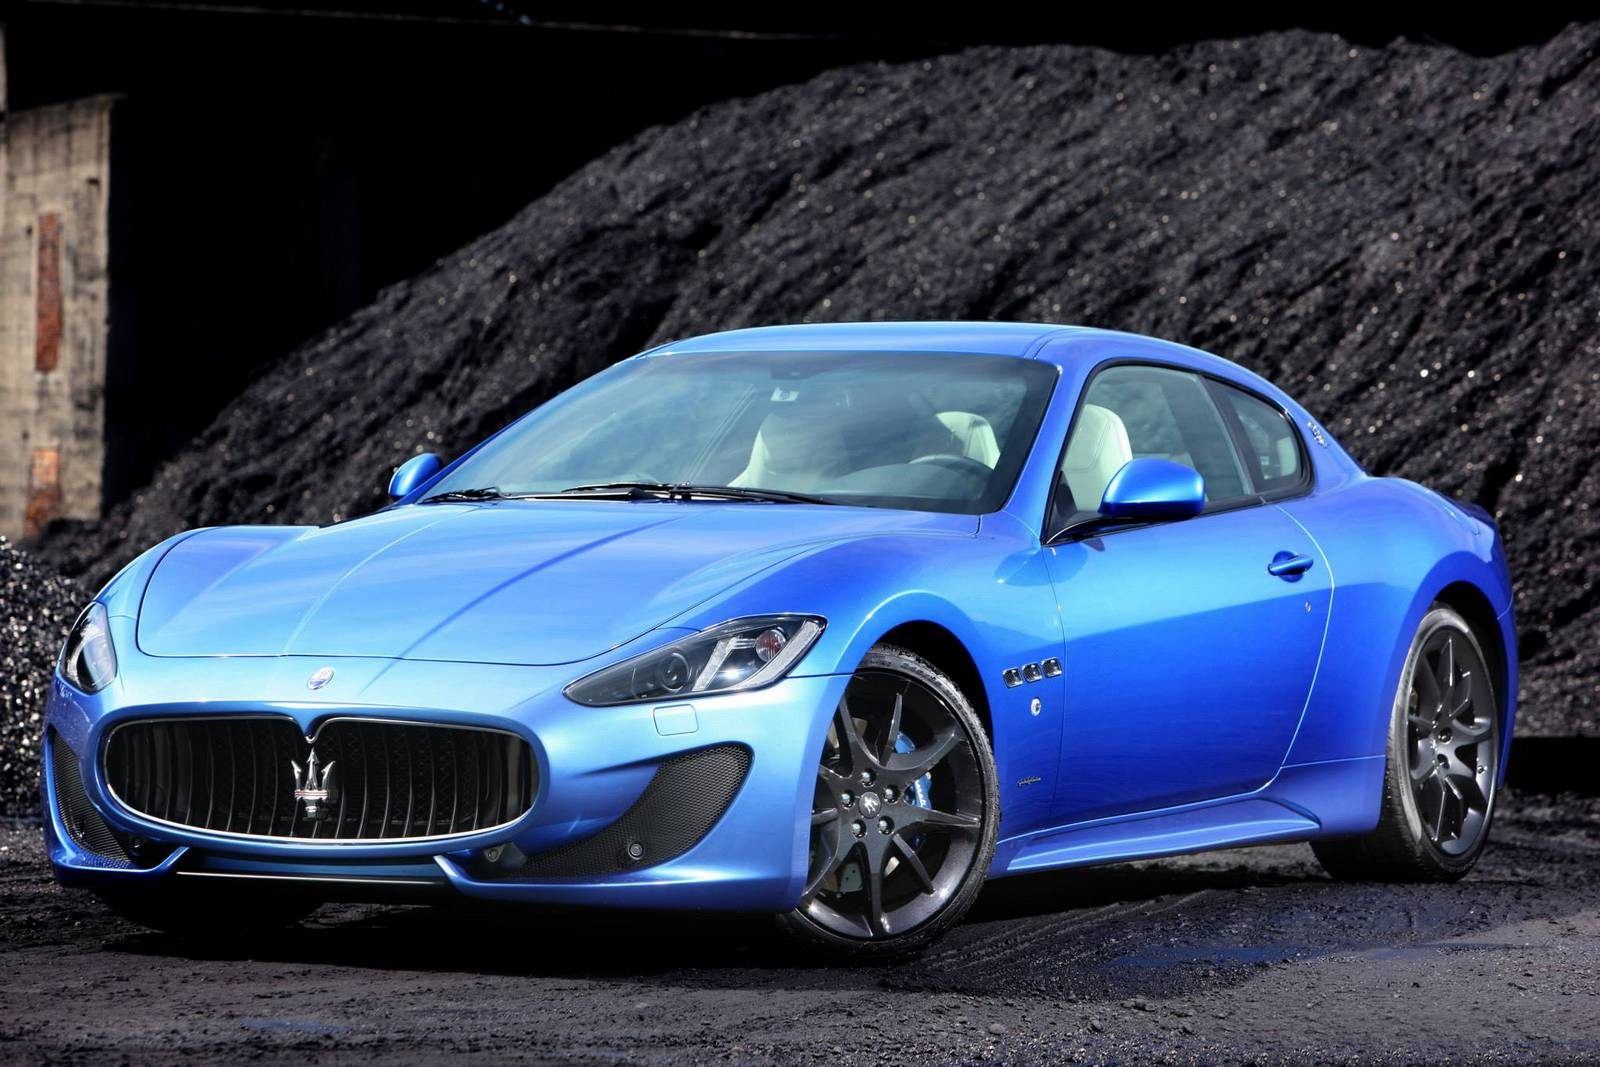 Maserati Granturismo Sport >> Gallery: Blue Maserati GranTurismo Sport on the Road - GTspirit